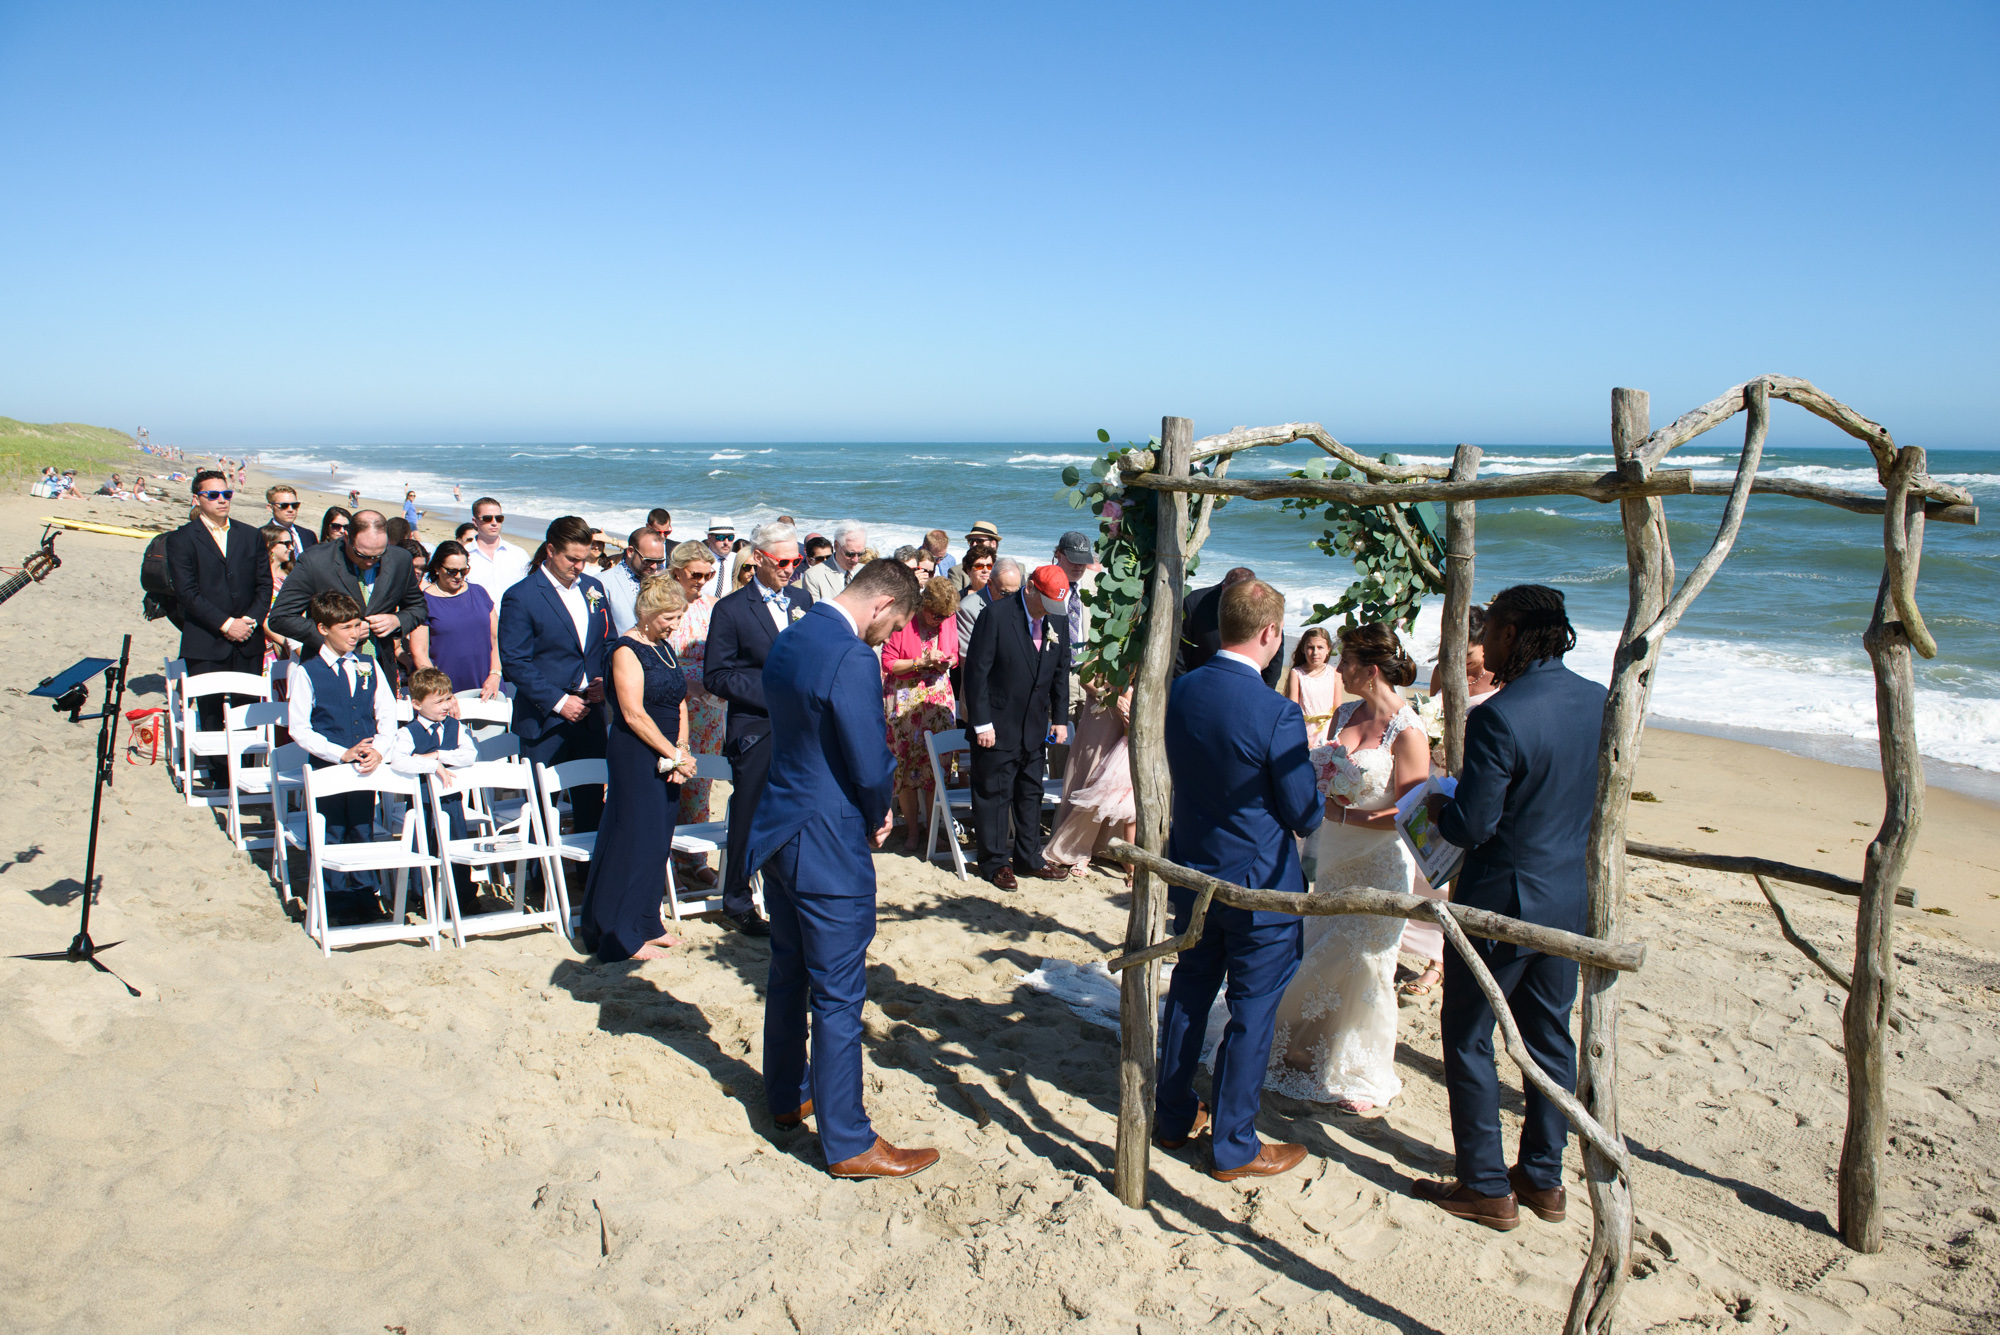 A South Beach wedding ceremony in Edgartown Massachusetts on the Island of Martha's Vineyard  photo by David Welch Photography